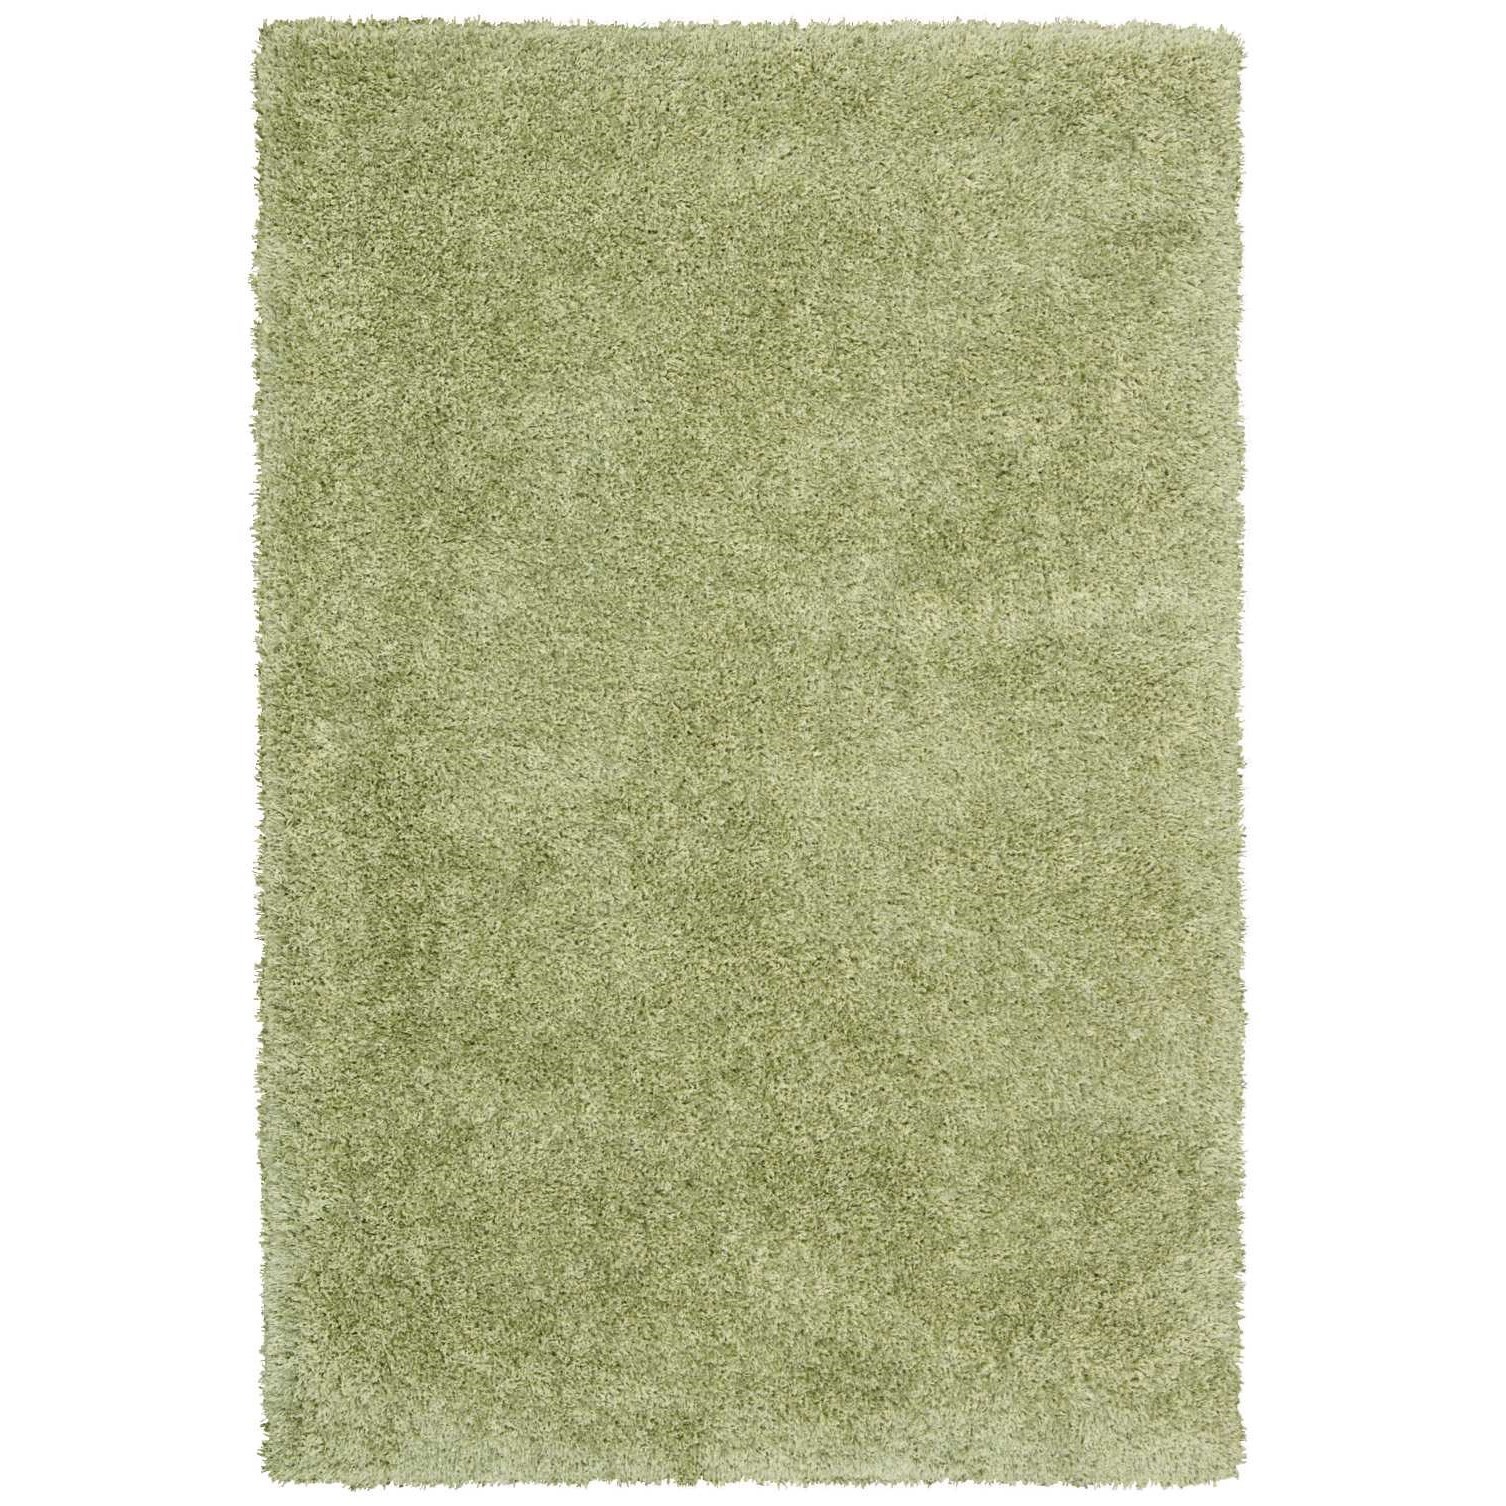 "Escape 5'3"" x 7'3"" Green Rectangle Rug by Nourison at Home Collections Furniture"